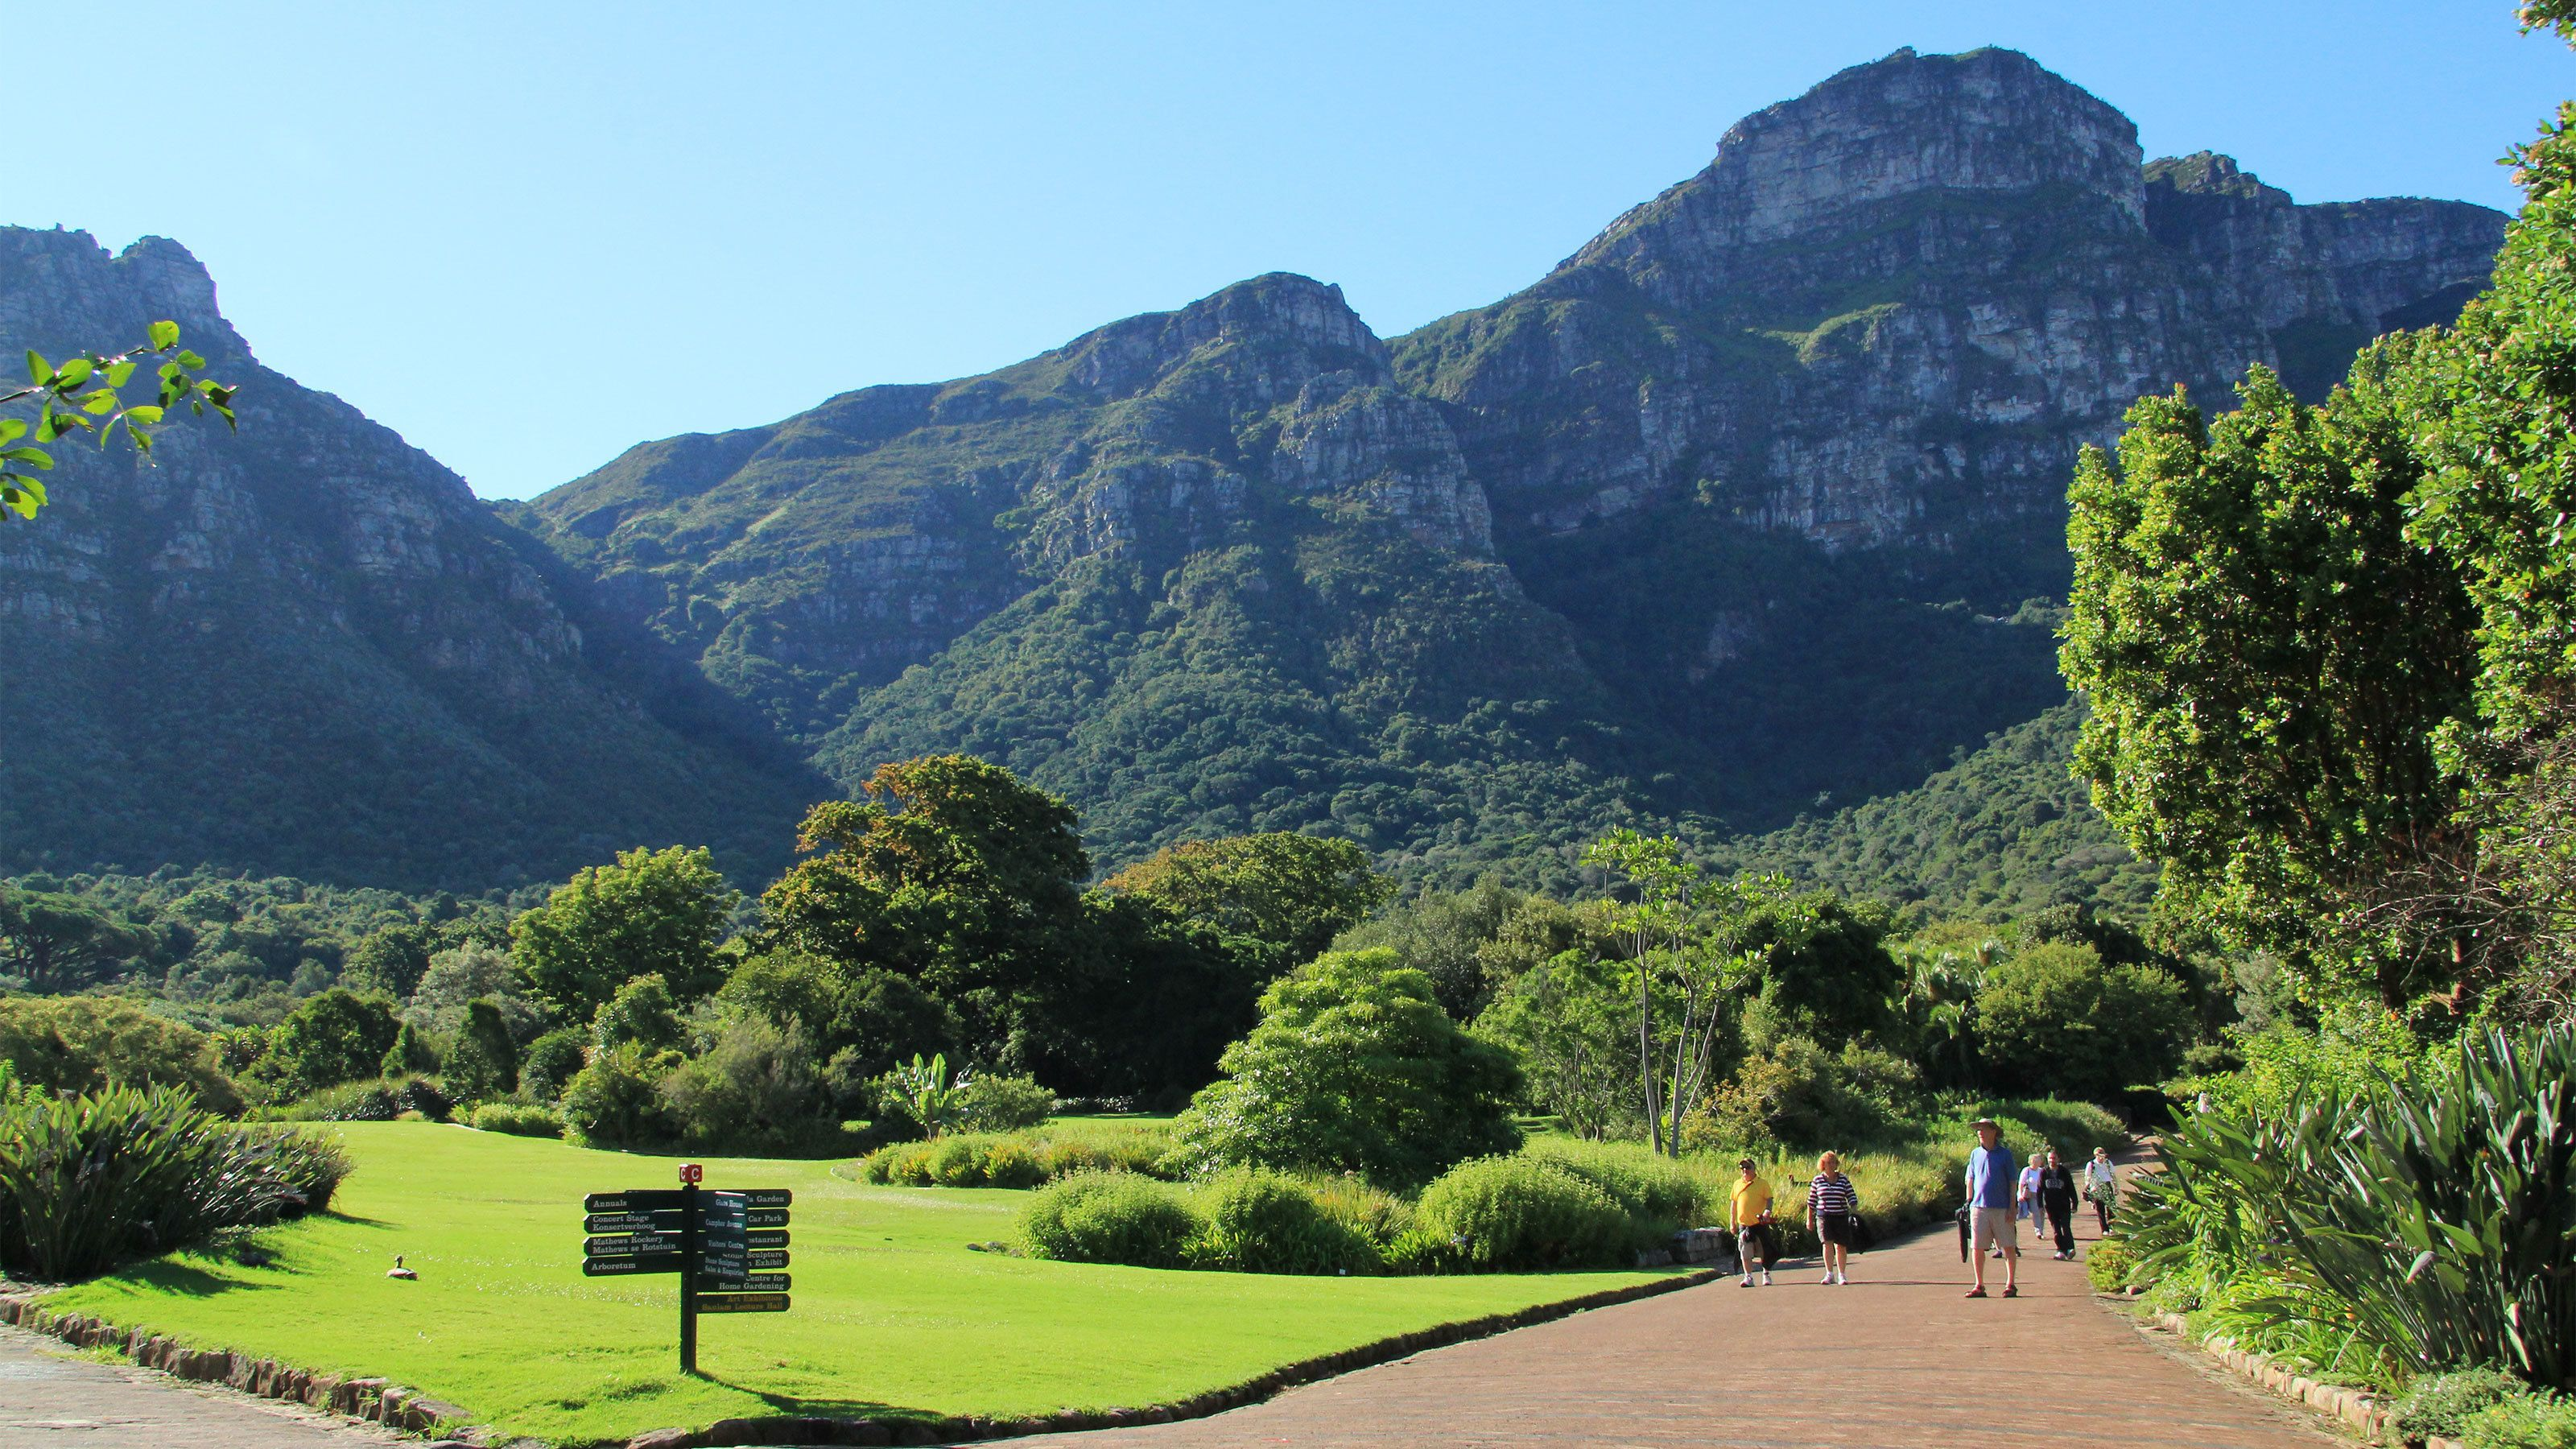 The green and mountainous landscape in Cape Town